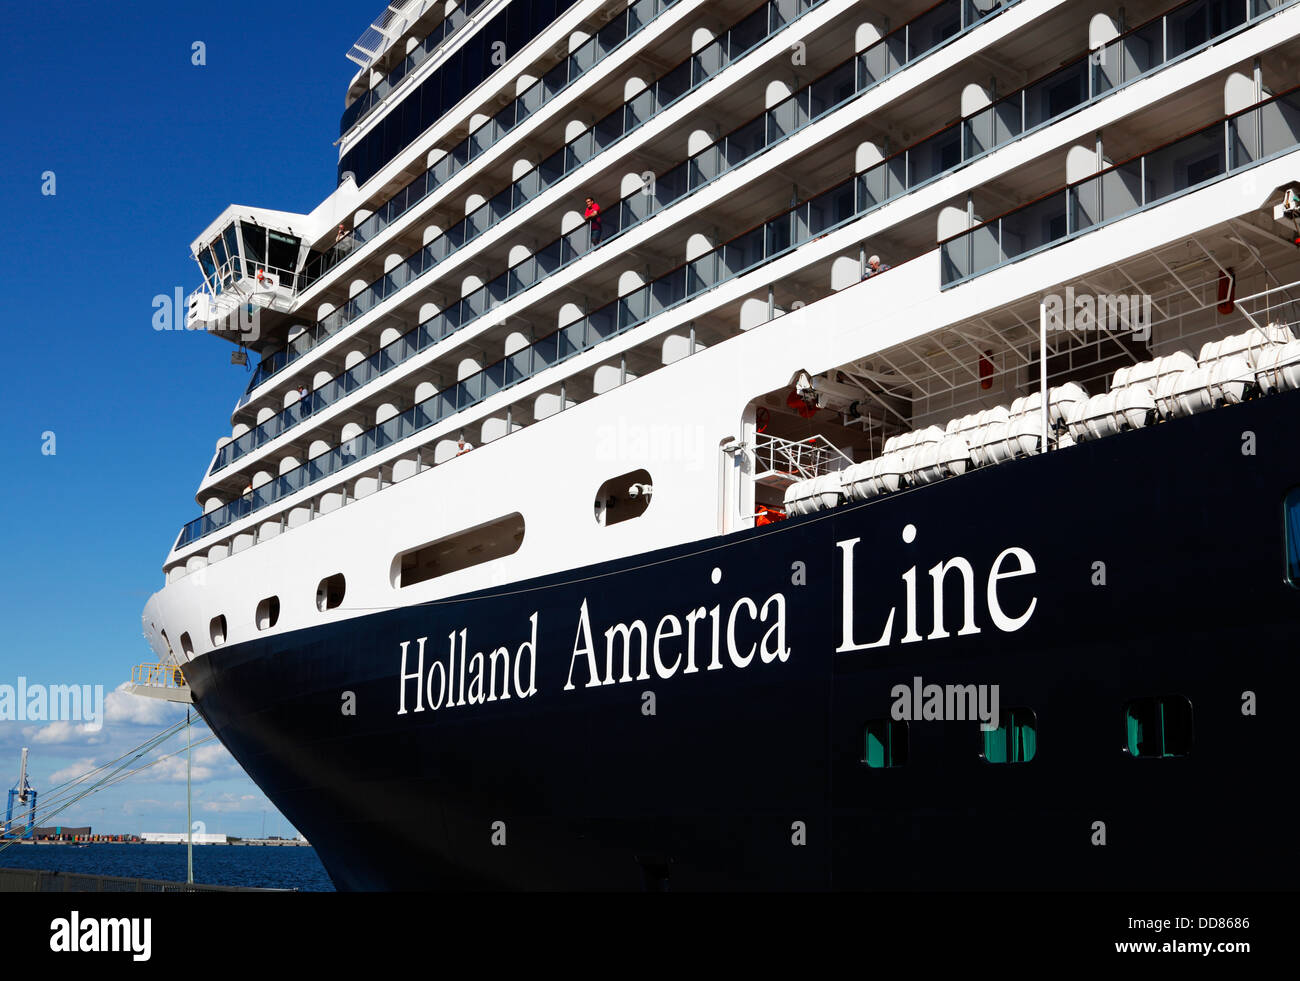 Bow of the cruise ship ms eurodam from holland america line moored at